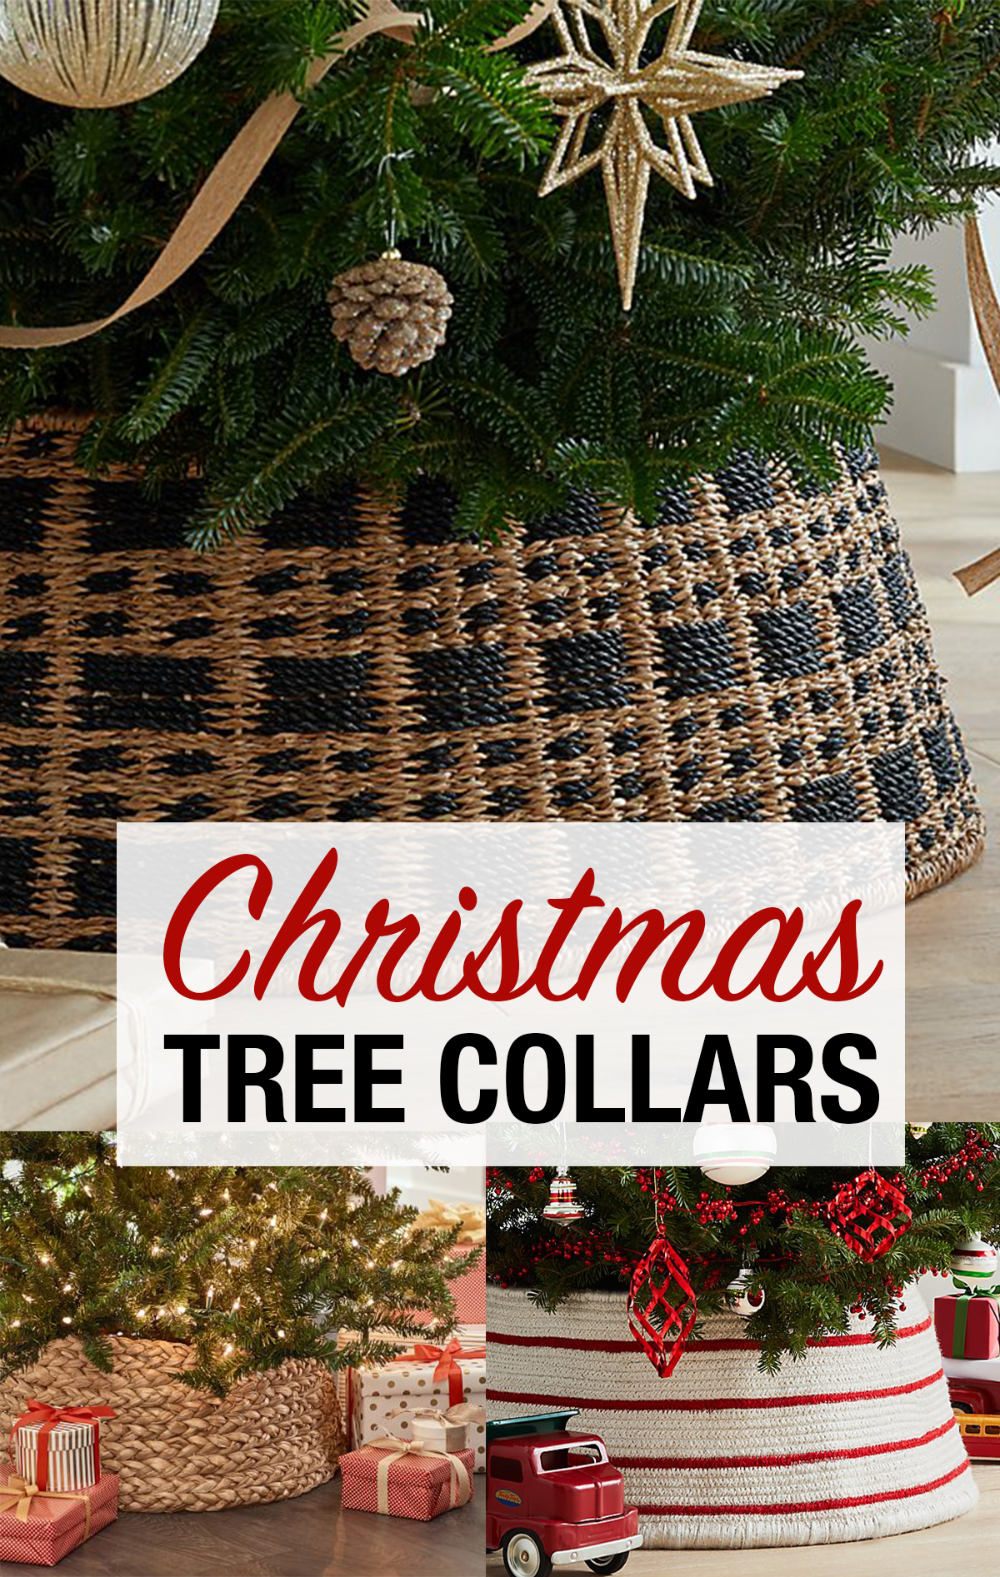 Christmas tree collars and baskets for every budget. Metal, woven and plastic tree collars. #SeasonalDecor #ChristmasTree #ChristmasDecor